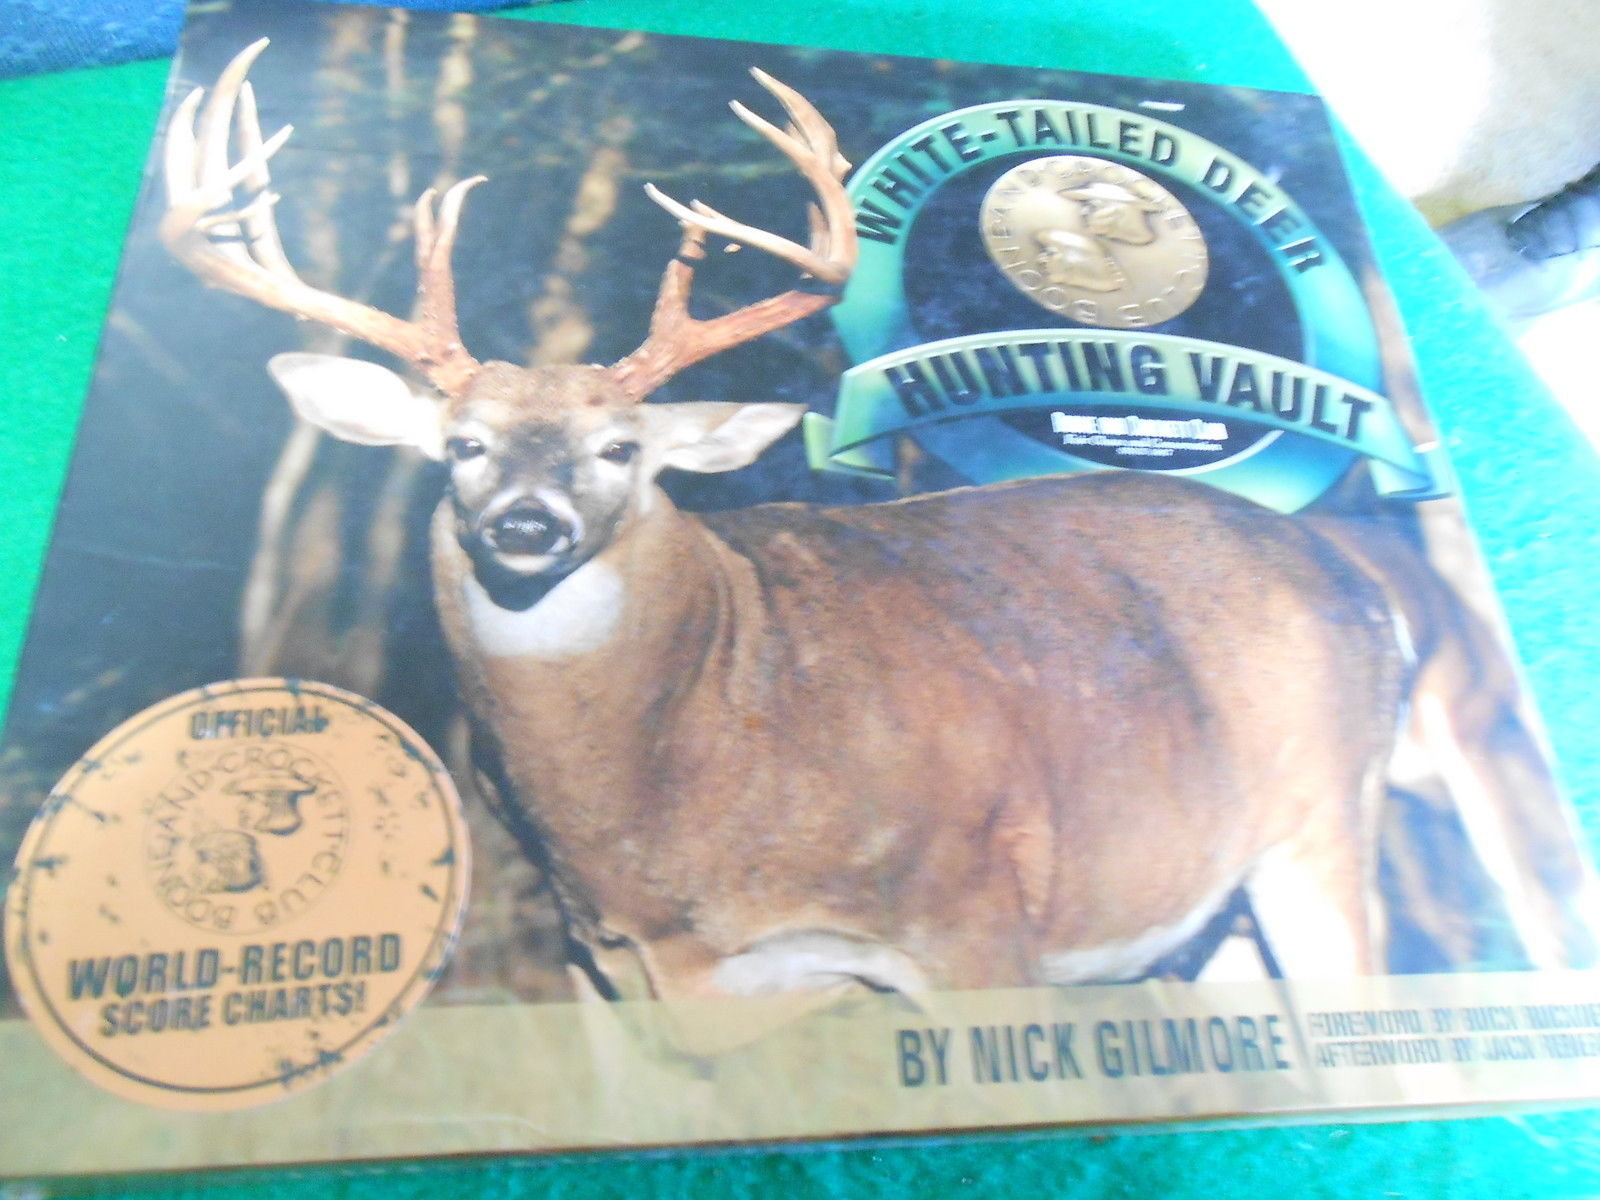 Primary image for Great WHITE-TAILED DEER HUNTING VAULT by Nick Gilmore.......................SALE